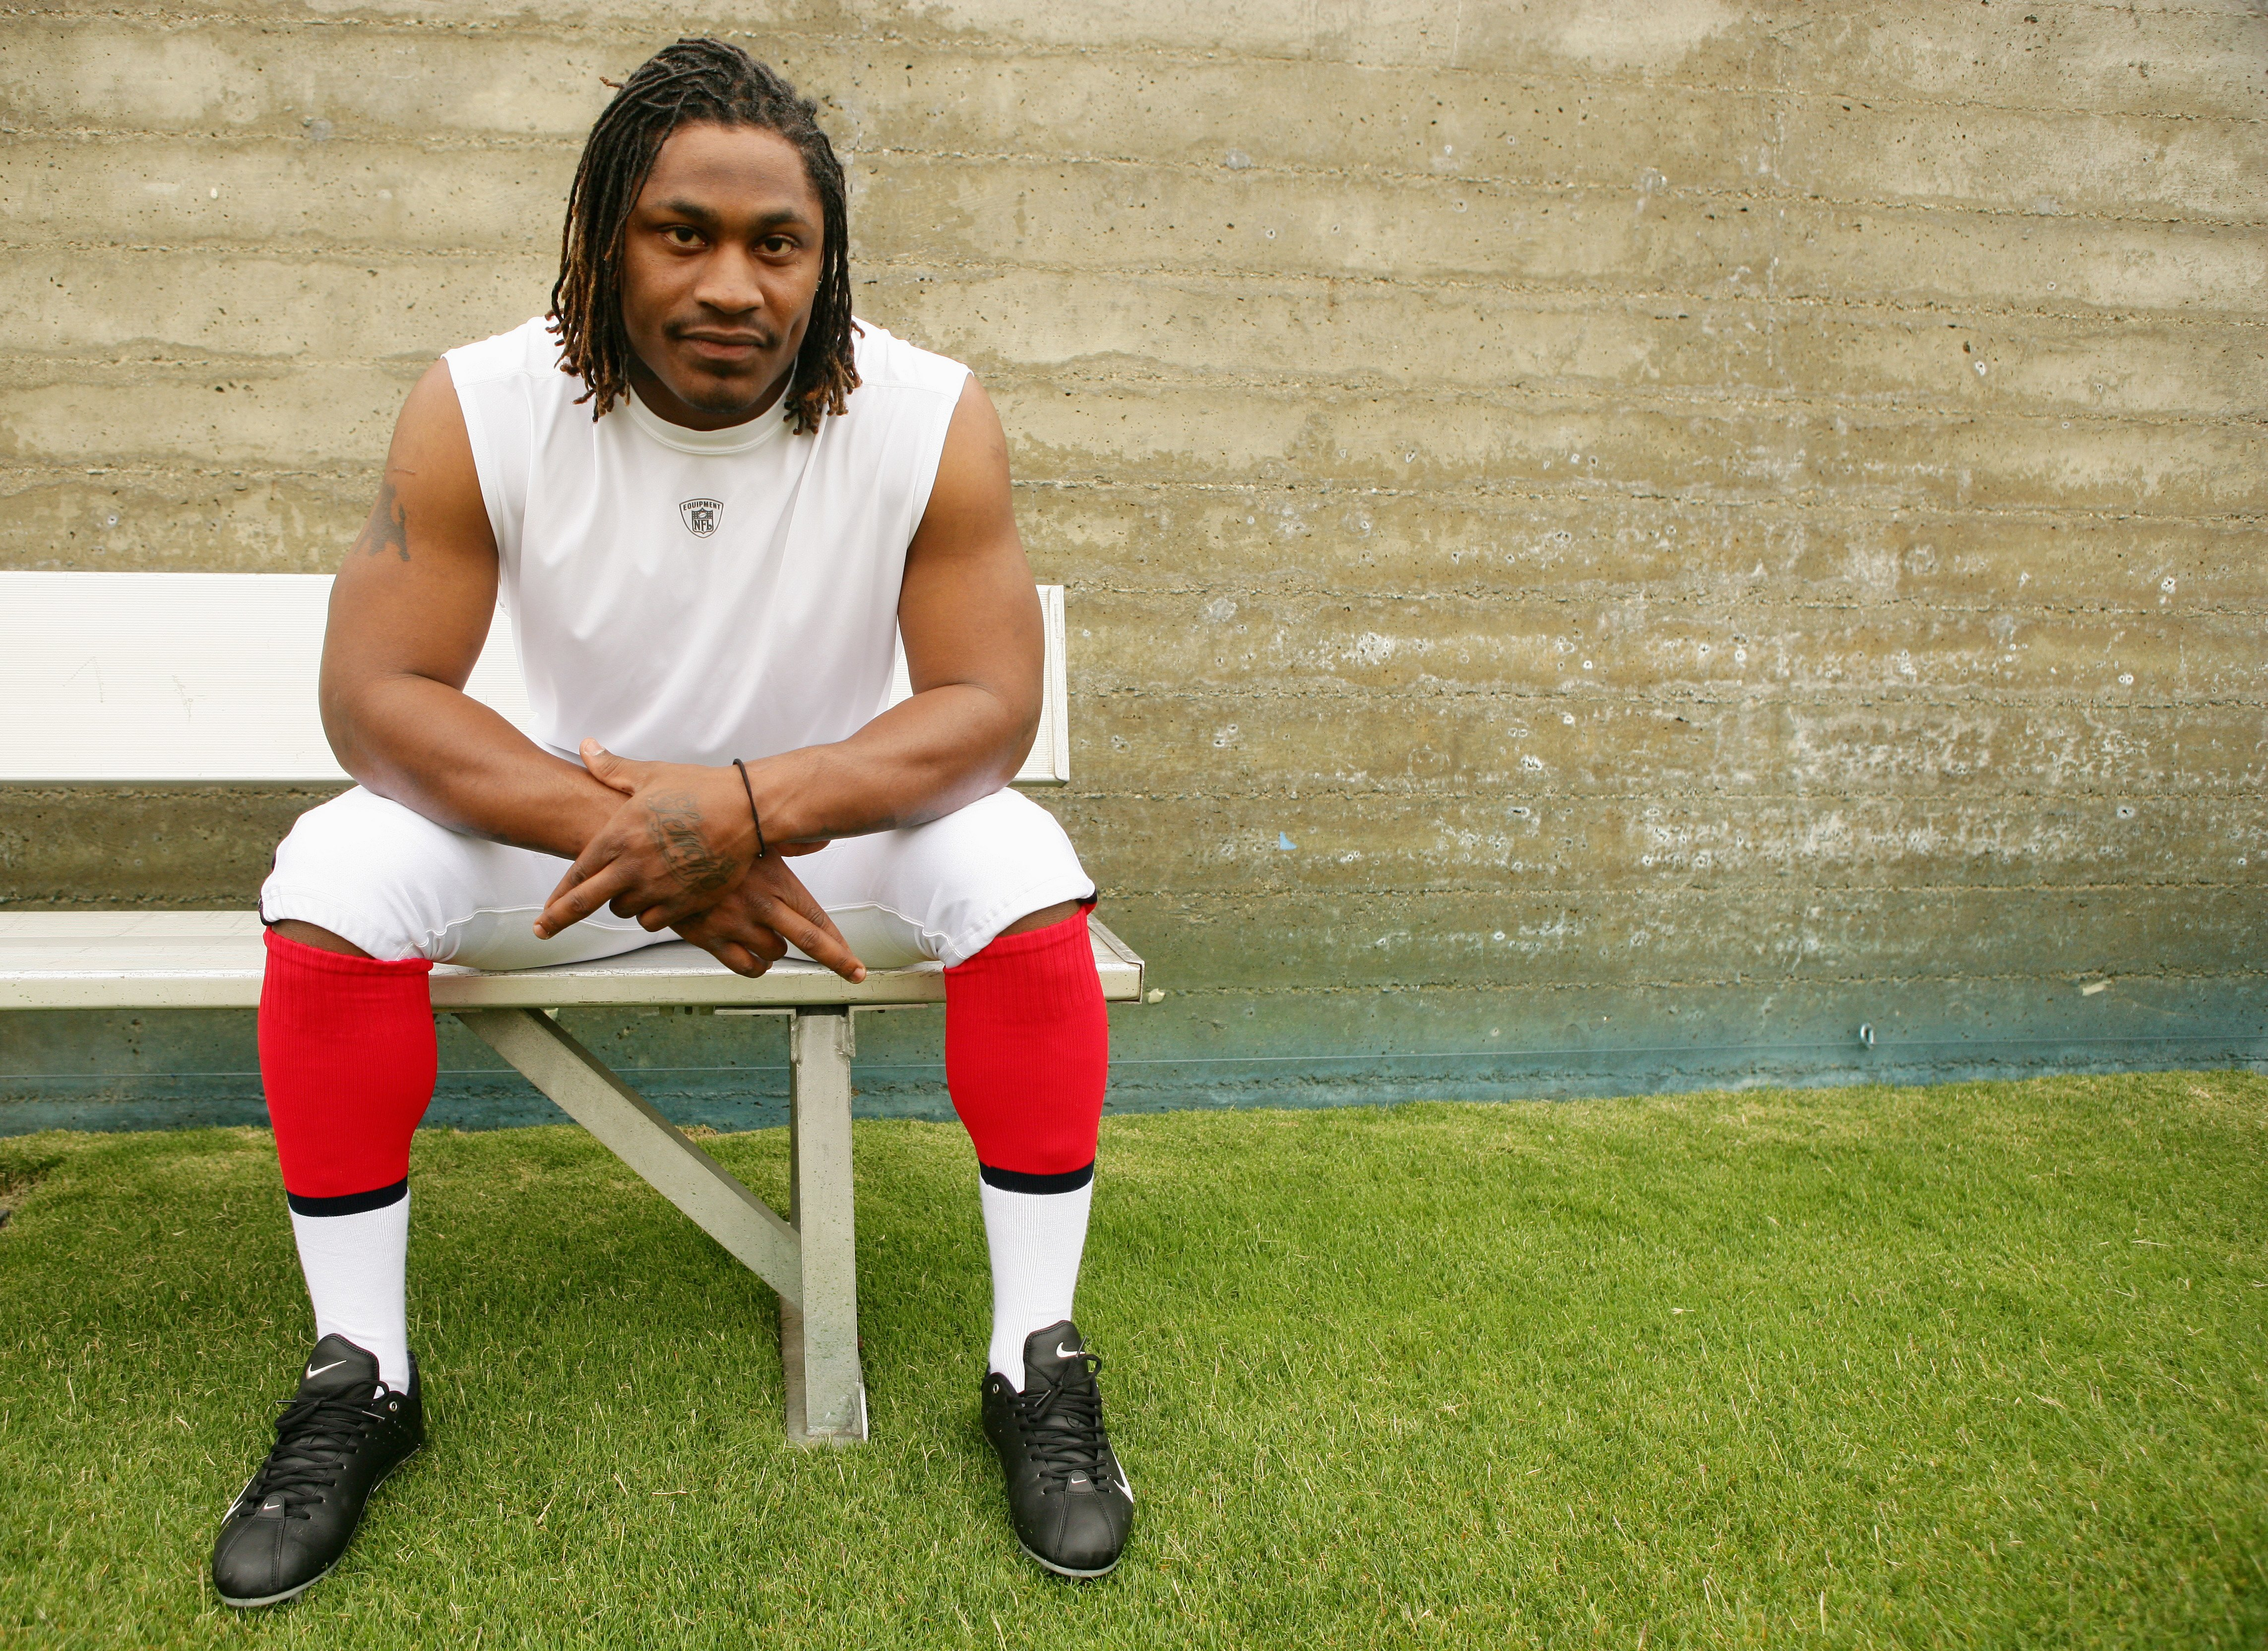 LOS ANGELES, CA - MAY 19: Running back, Marshawn Lynch #23 of the Buffalo Bills poses for a portrait at the 2007 NFL Players Rookie Premiere on May 19, 2007 at the Los Angeles Memorial Coliseum in Los Angeles, California. (Photo by Nick Laham/Getty Images